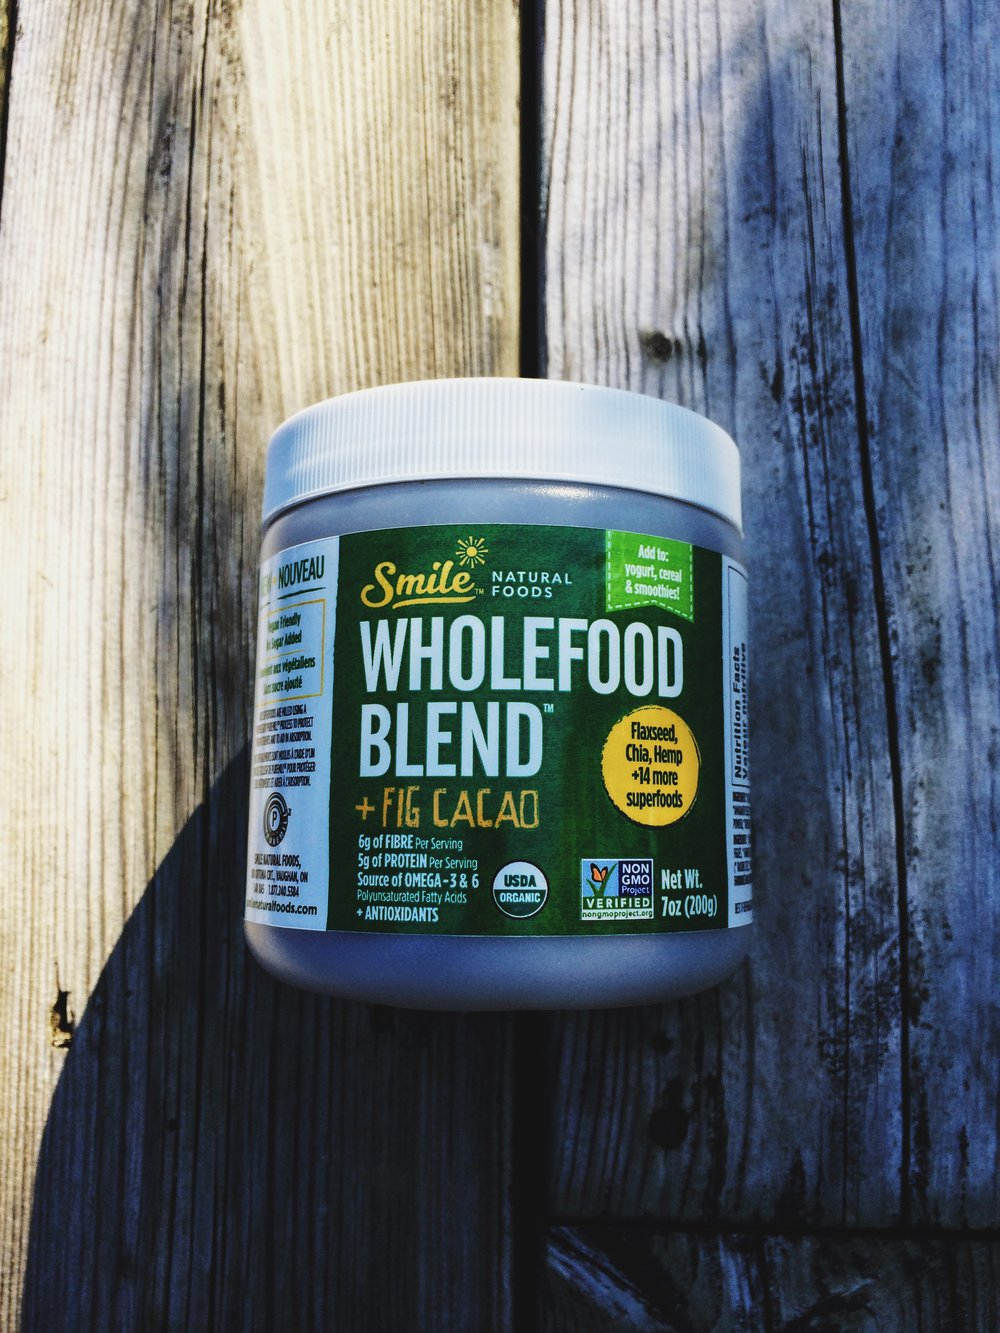 Smile Natural Foods Wholefood Blend + Fig Cacao